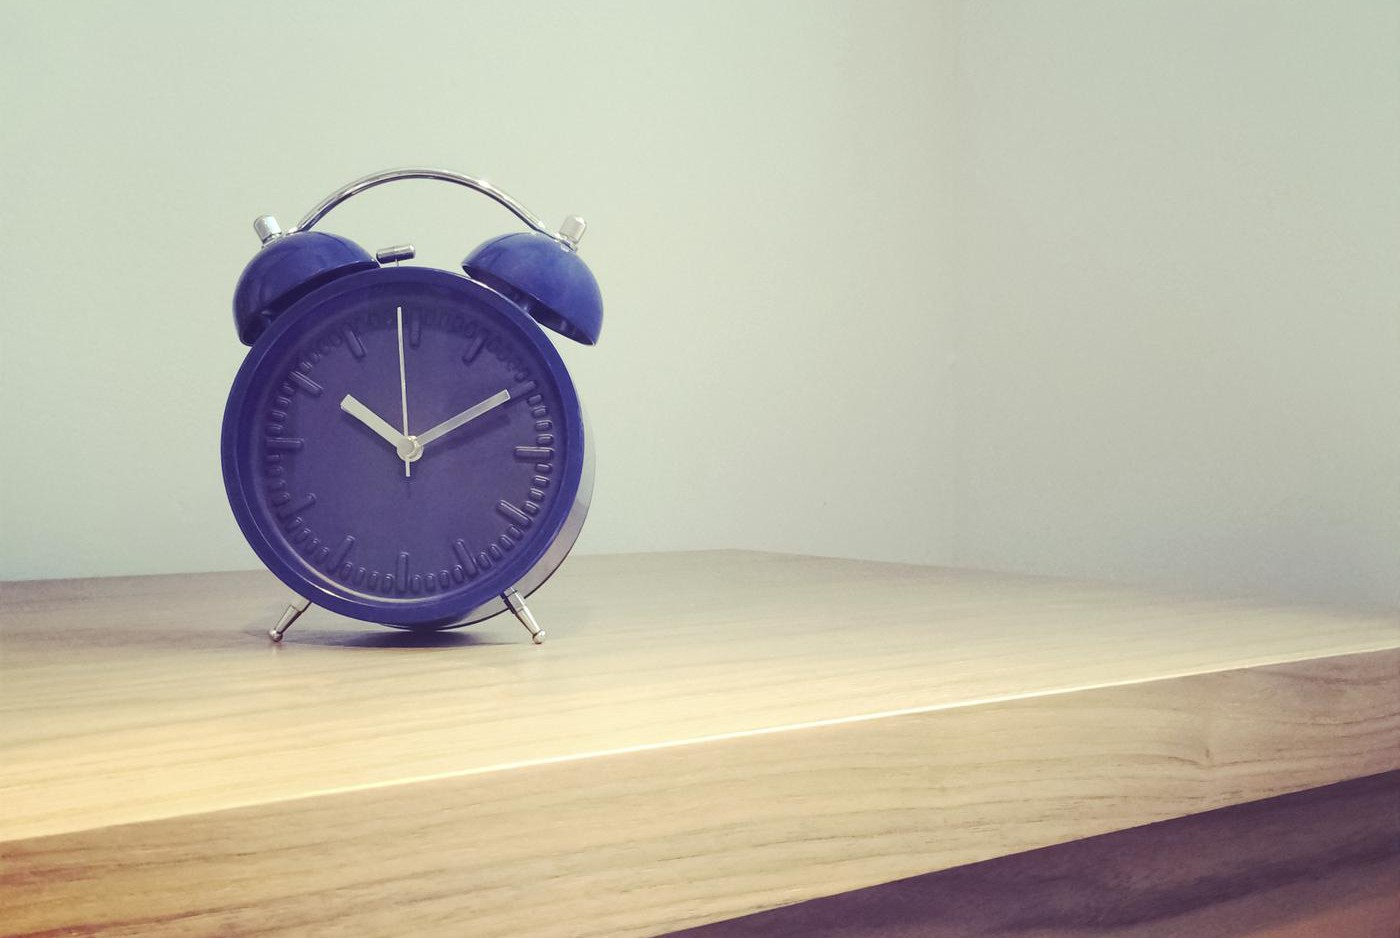 14 things you'll only know if you're really forgetful